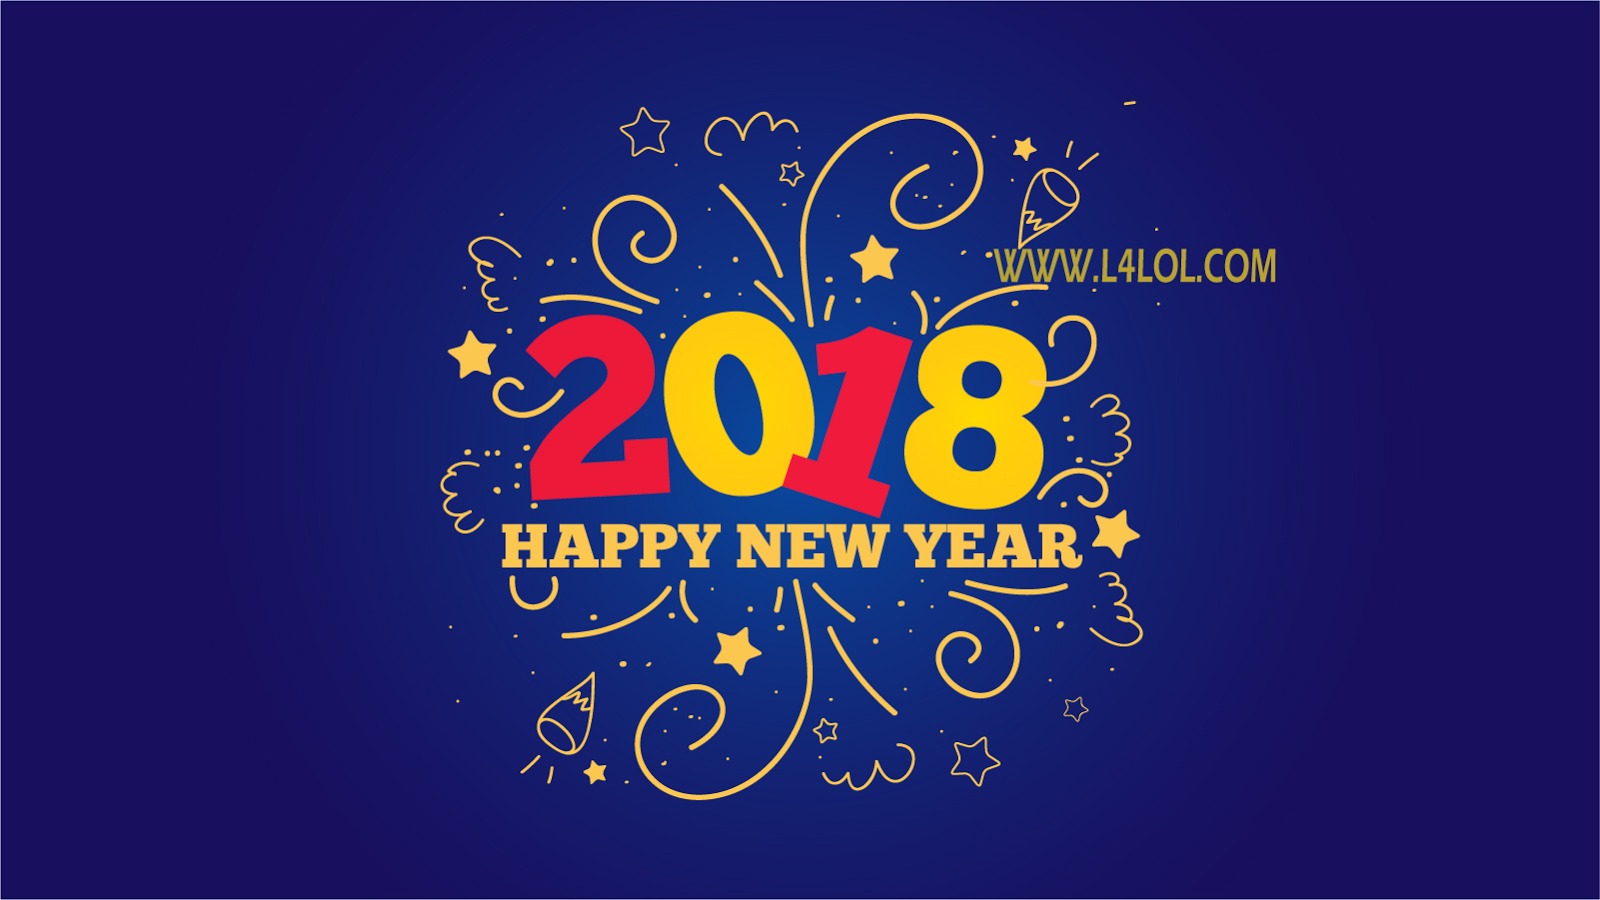 Top 100 most amazing happy new year wishes greetings quotes - May